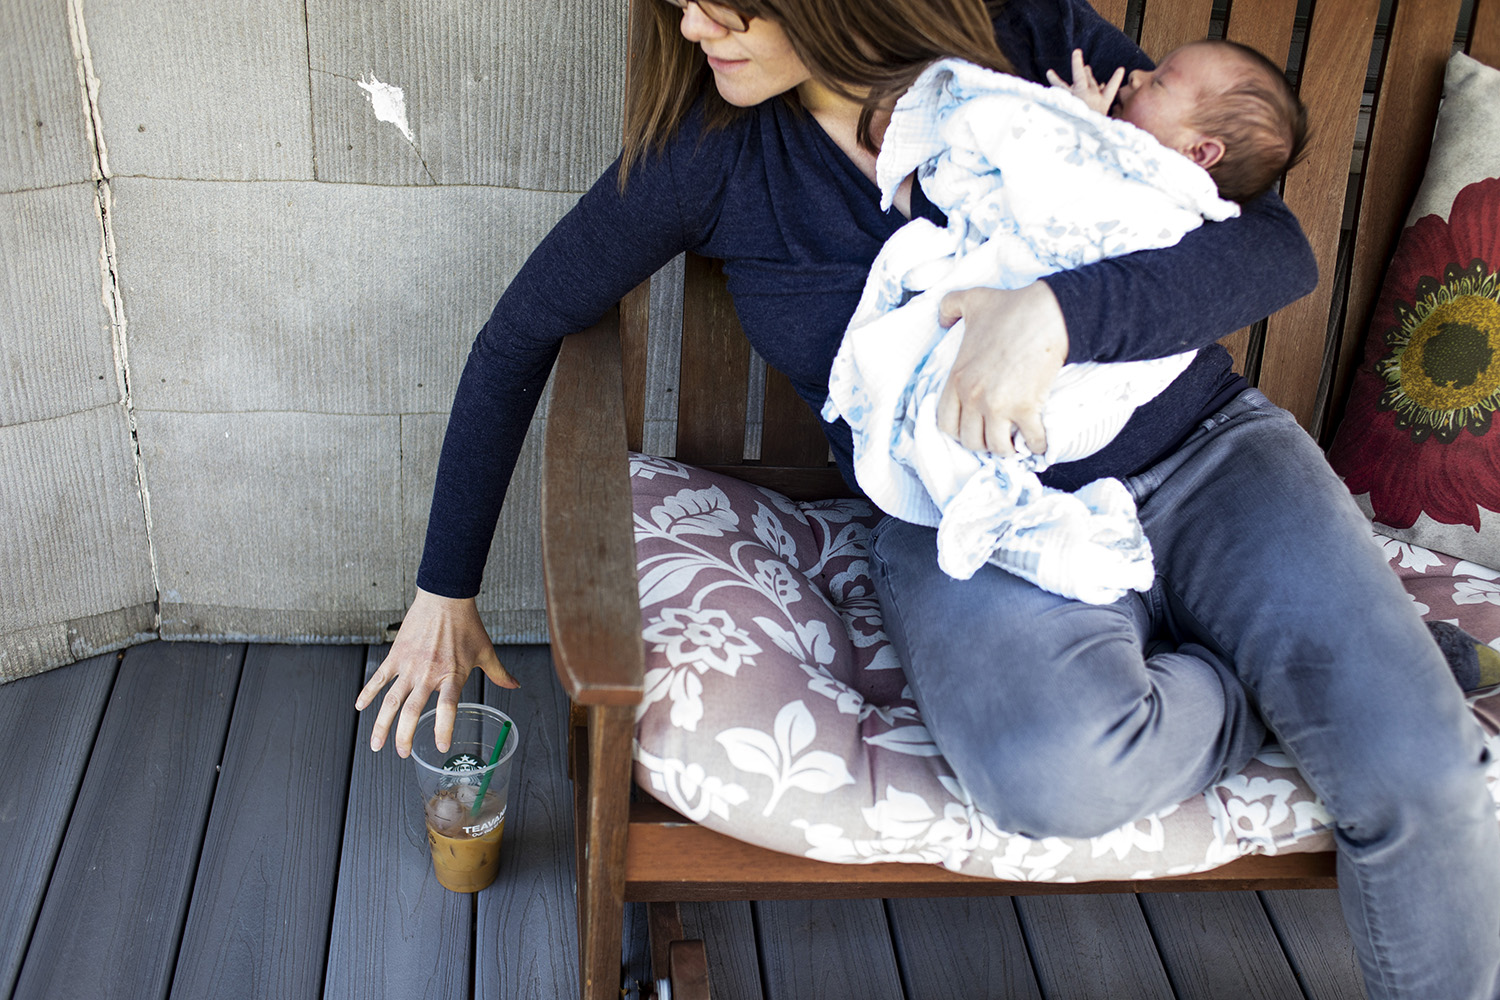 Newborn life requires coffee for this Boston mom.